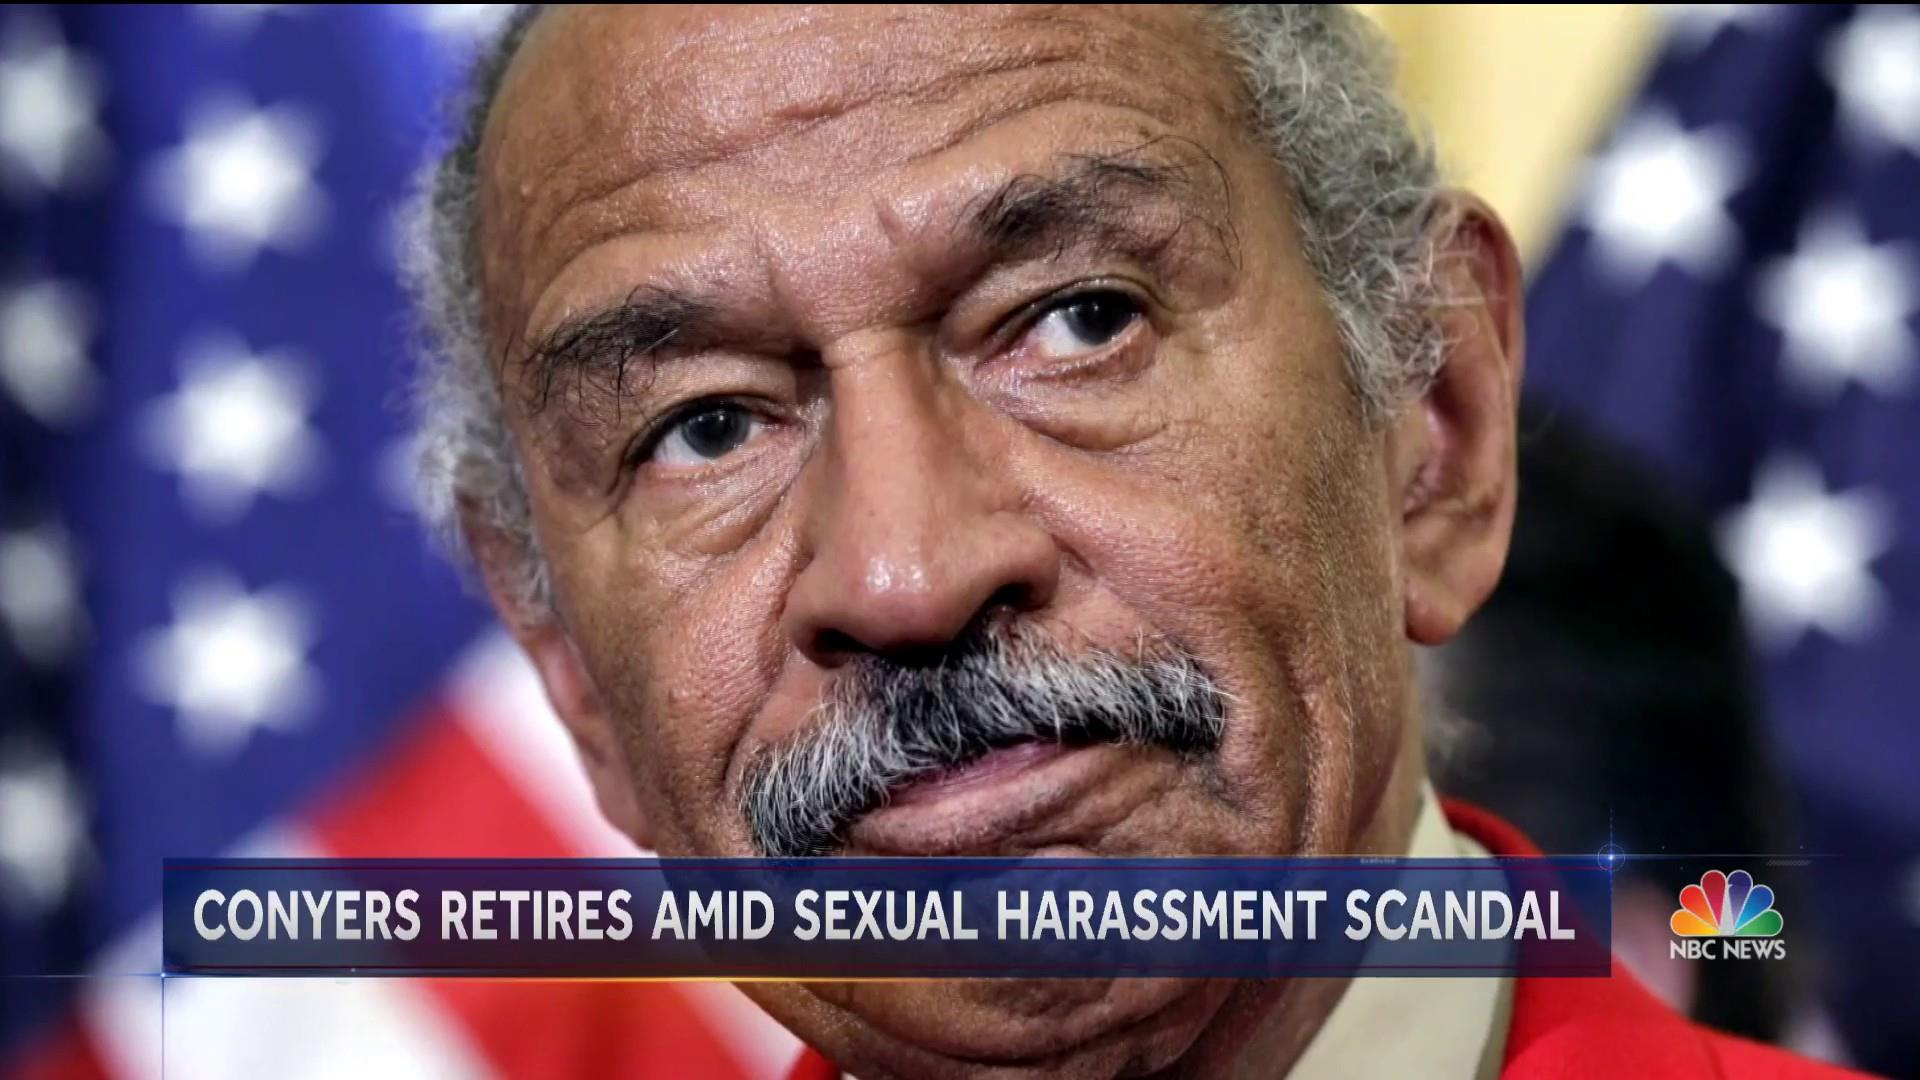 Rep. John Conyers announces retirement amid sexual misconduct allegations